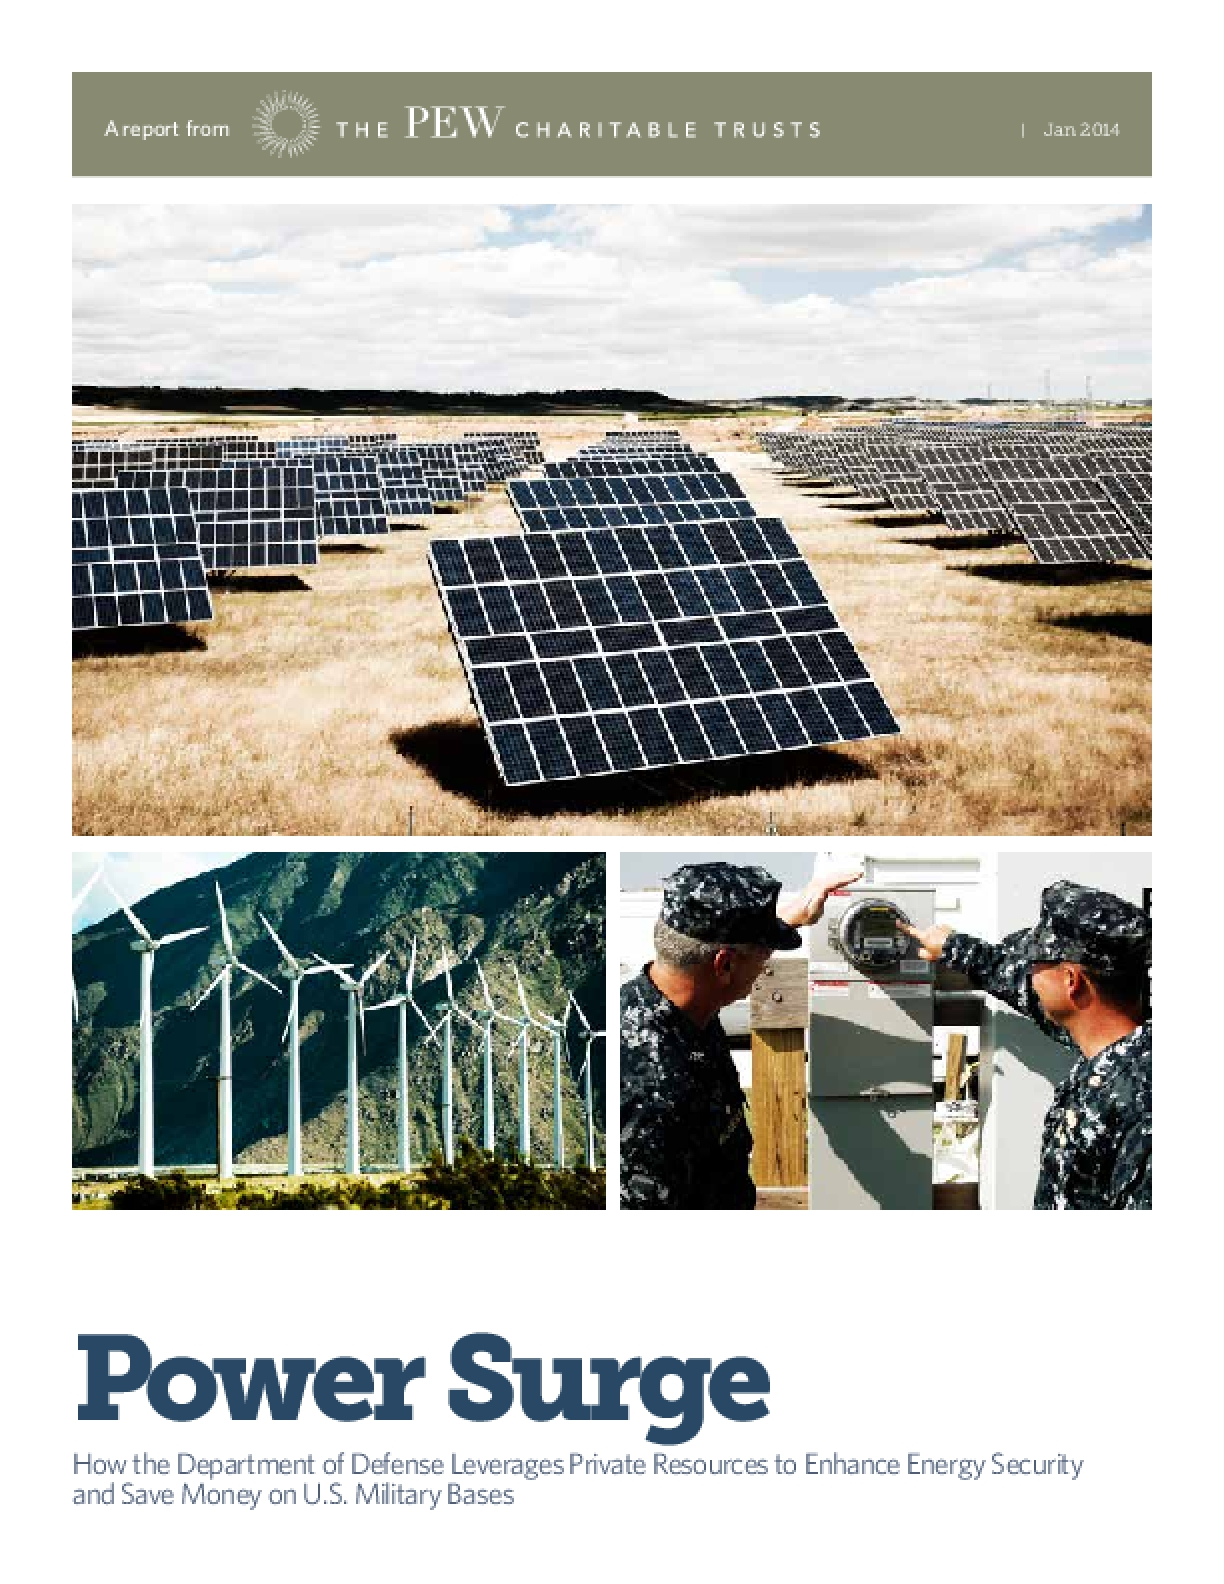 Power Surge: Energy Security and the Department of Defense